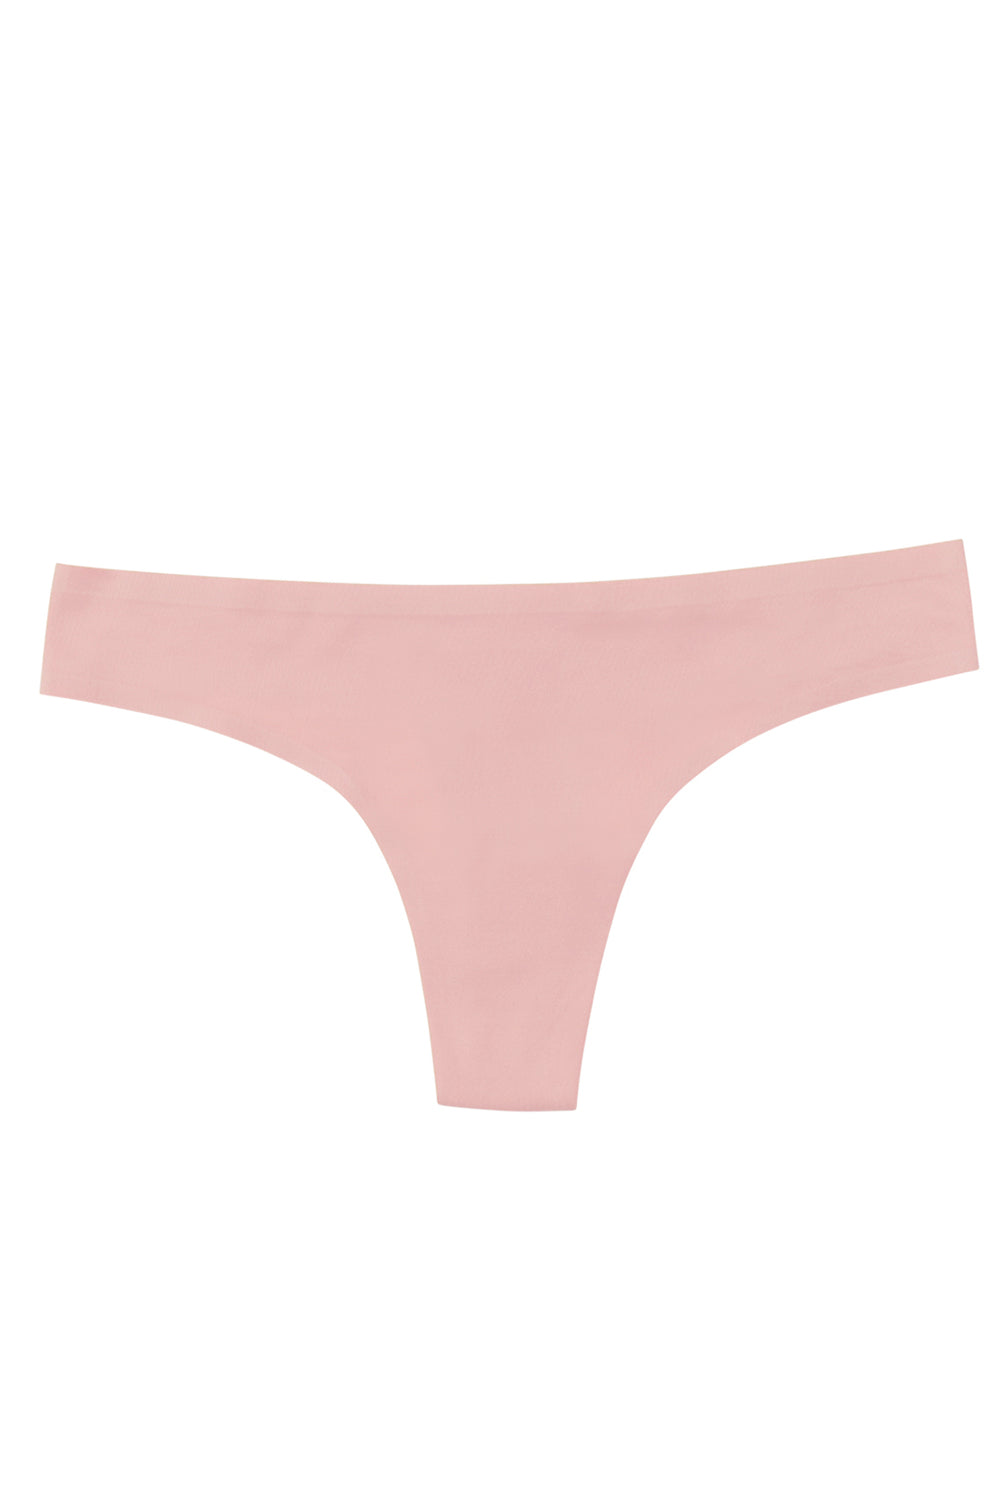 Pink low rise thong panty, eco-friendly machine washable